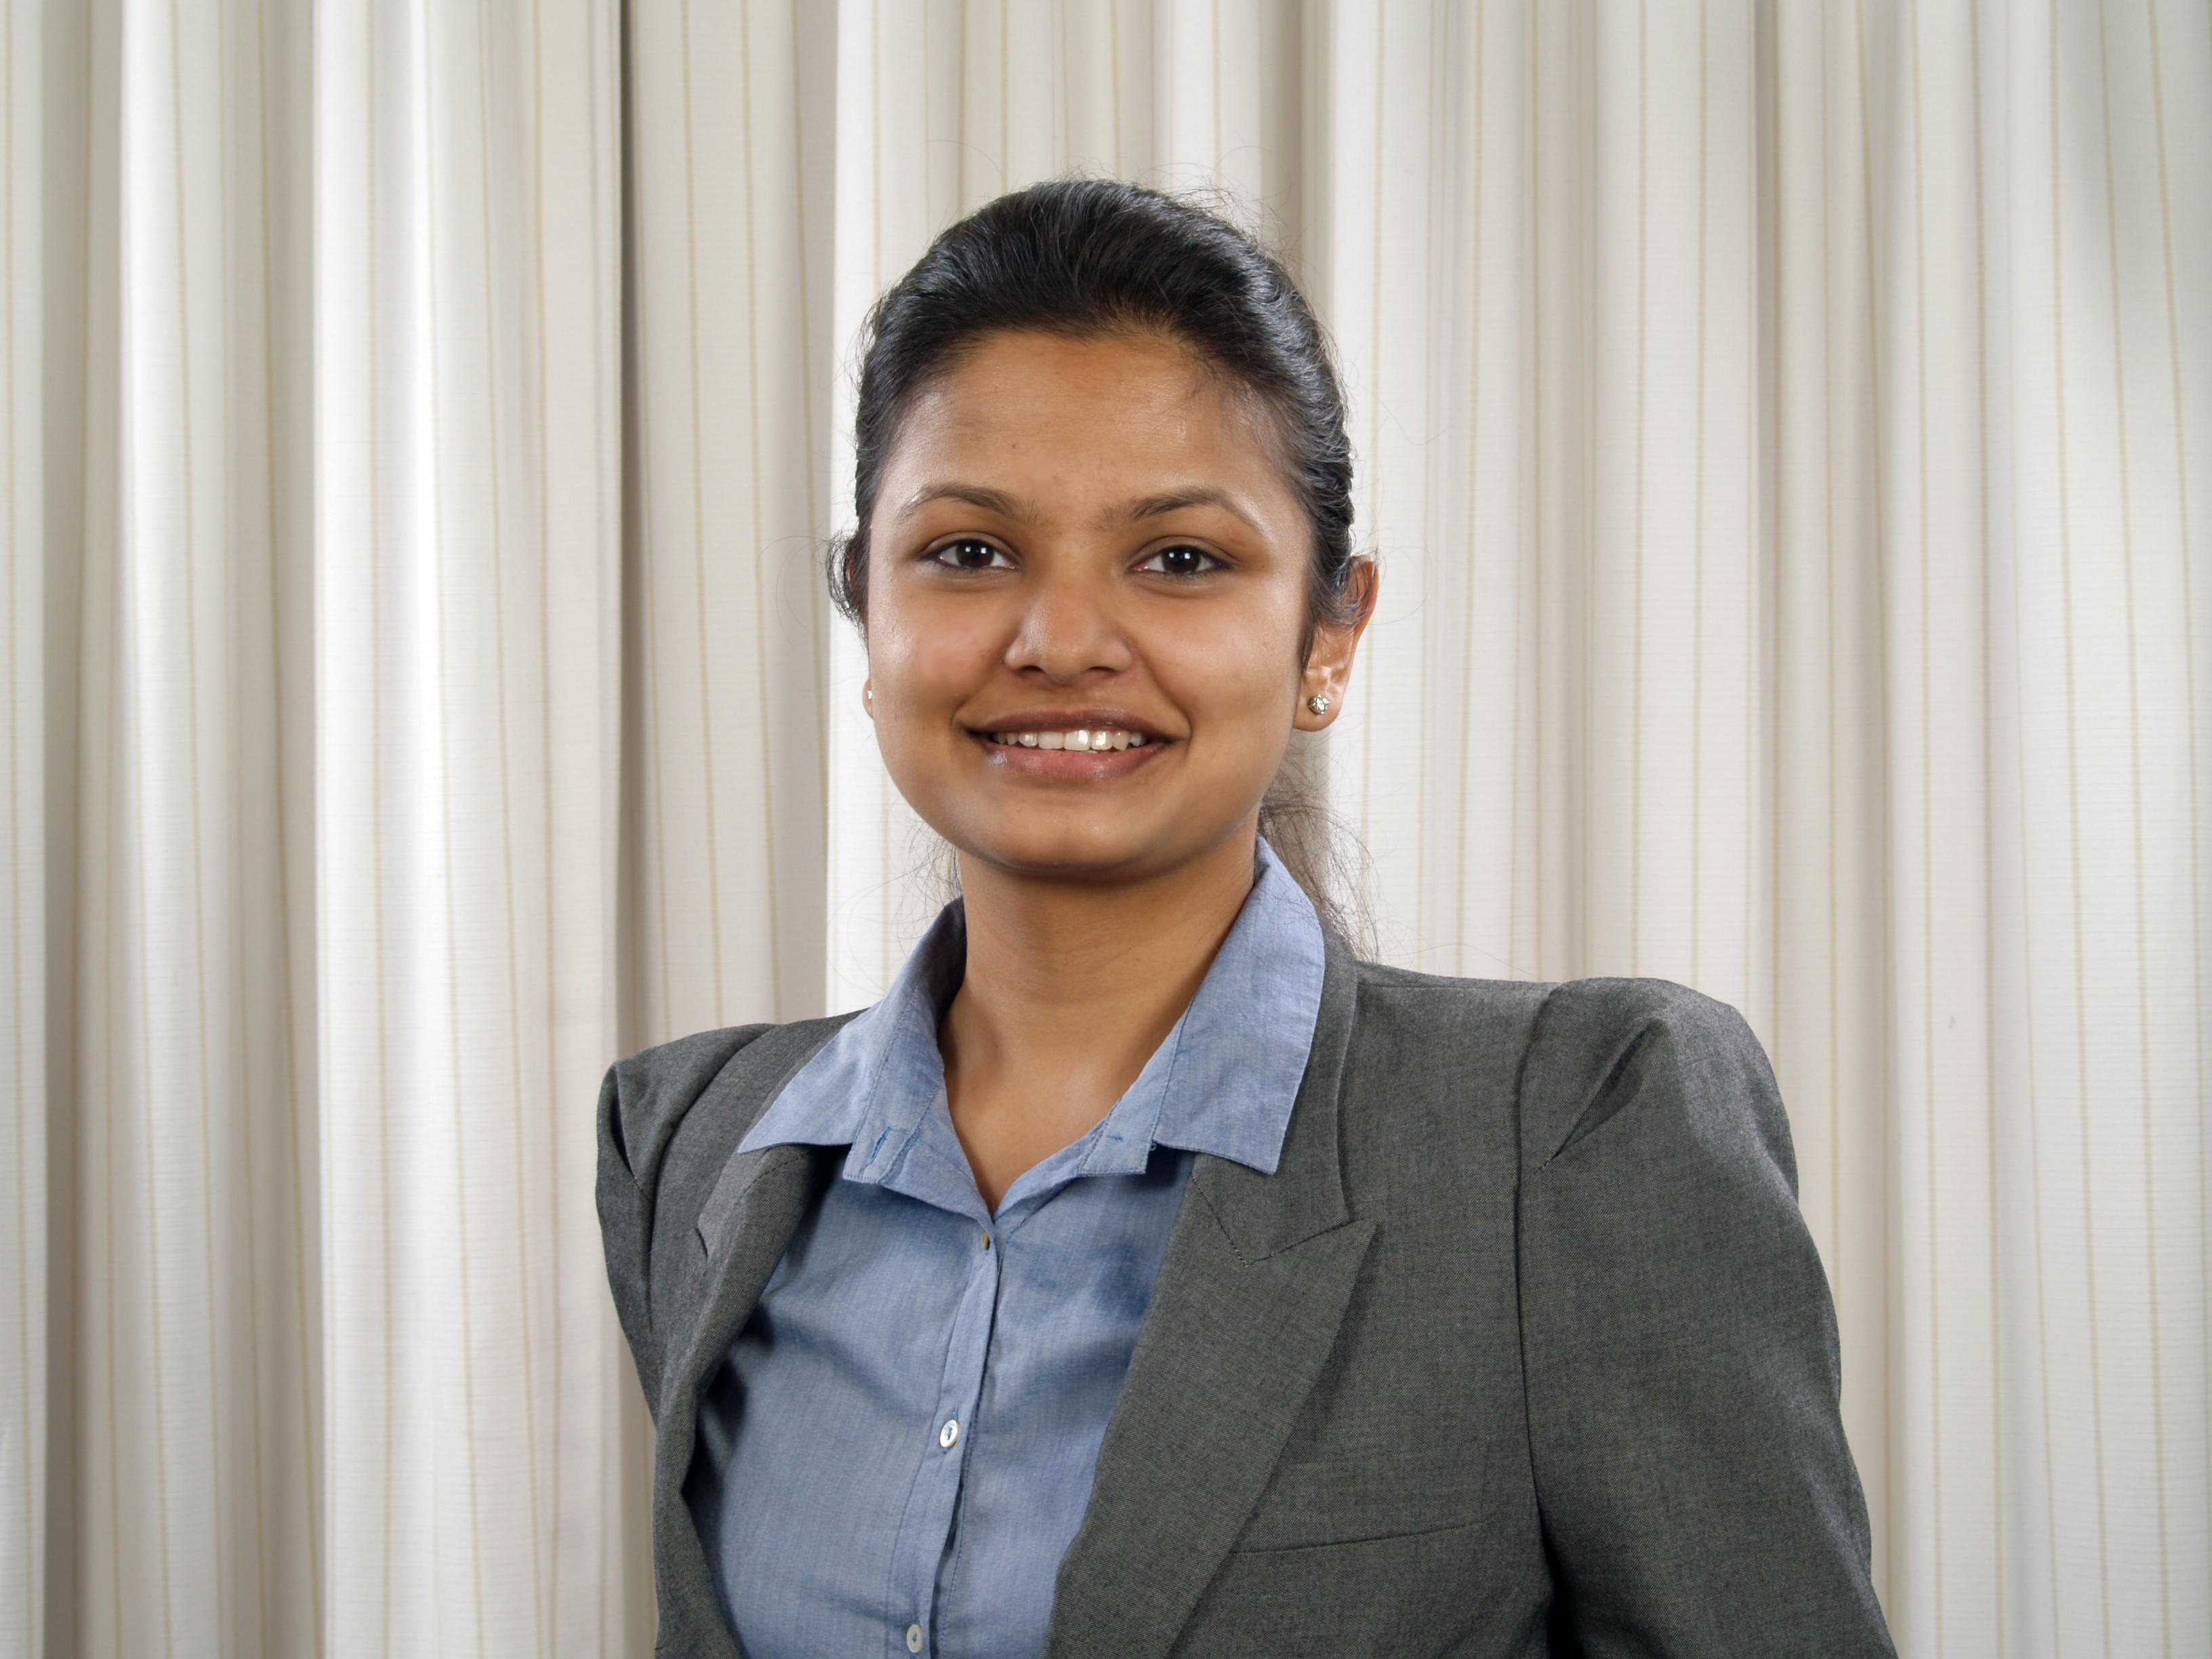 Kruti Jain, Director, KUL, India real estate news, Indian realty news, Property new, Home, Policy Advocacy, Activism, Mall, Retail, Office space, SEZ, IT/ITeS, Residential, Commercial, Hospitality, Project, Location, Regulation, FDI, Taxation, Investment, Banking, Property Management, Ravi Sinha, Track2Media, Track2Realty